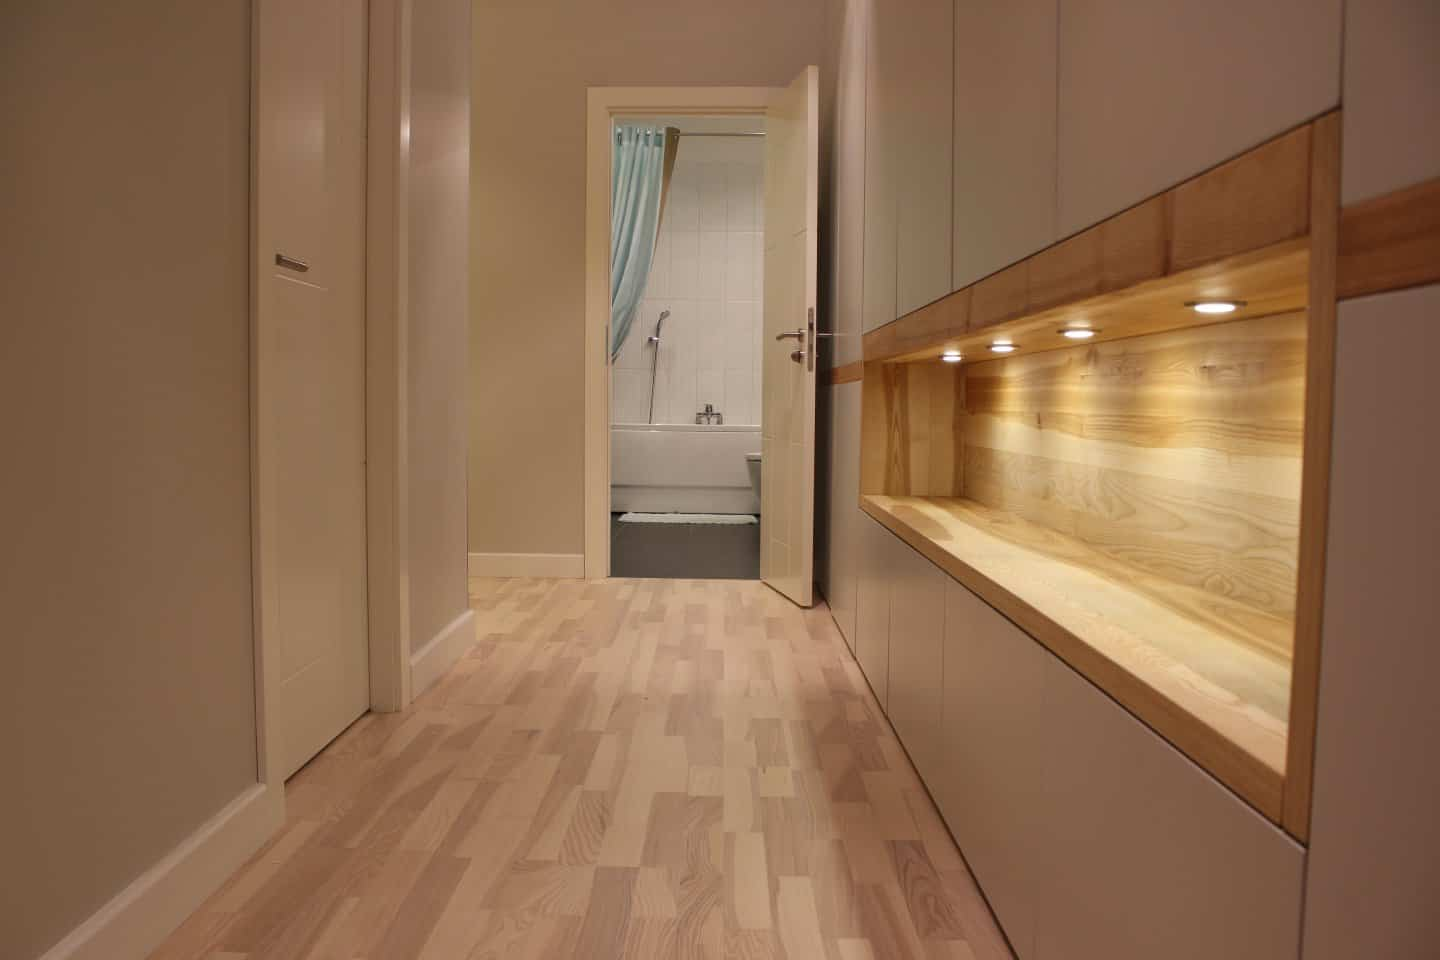 Fitted wardrobes  hinged door closets are the perfect storage solution for any home  iWardrobes